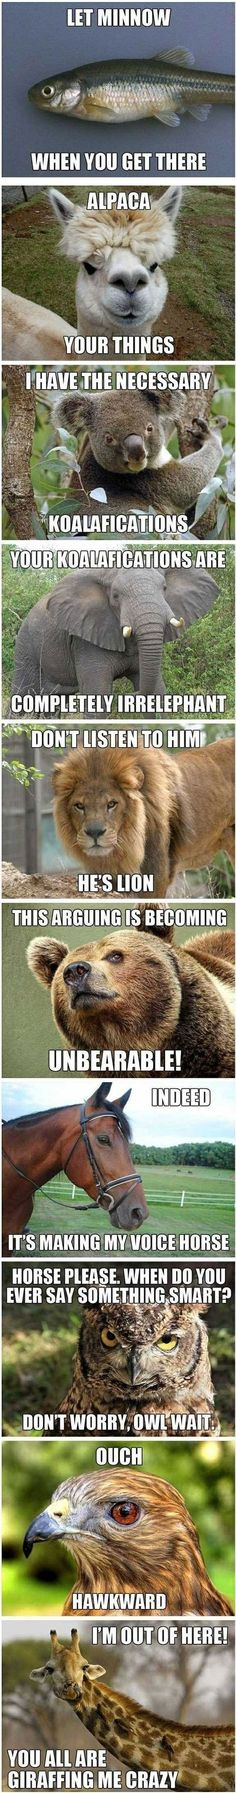 Funny Animal Puns  - funny pictures #funnypictures